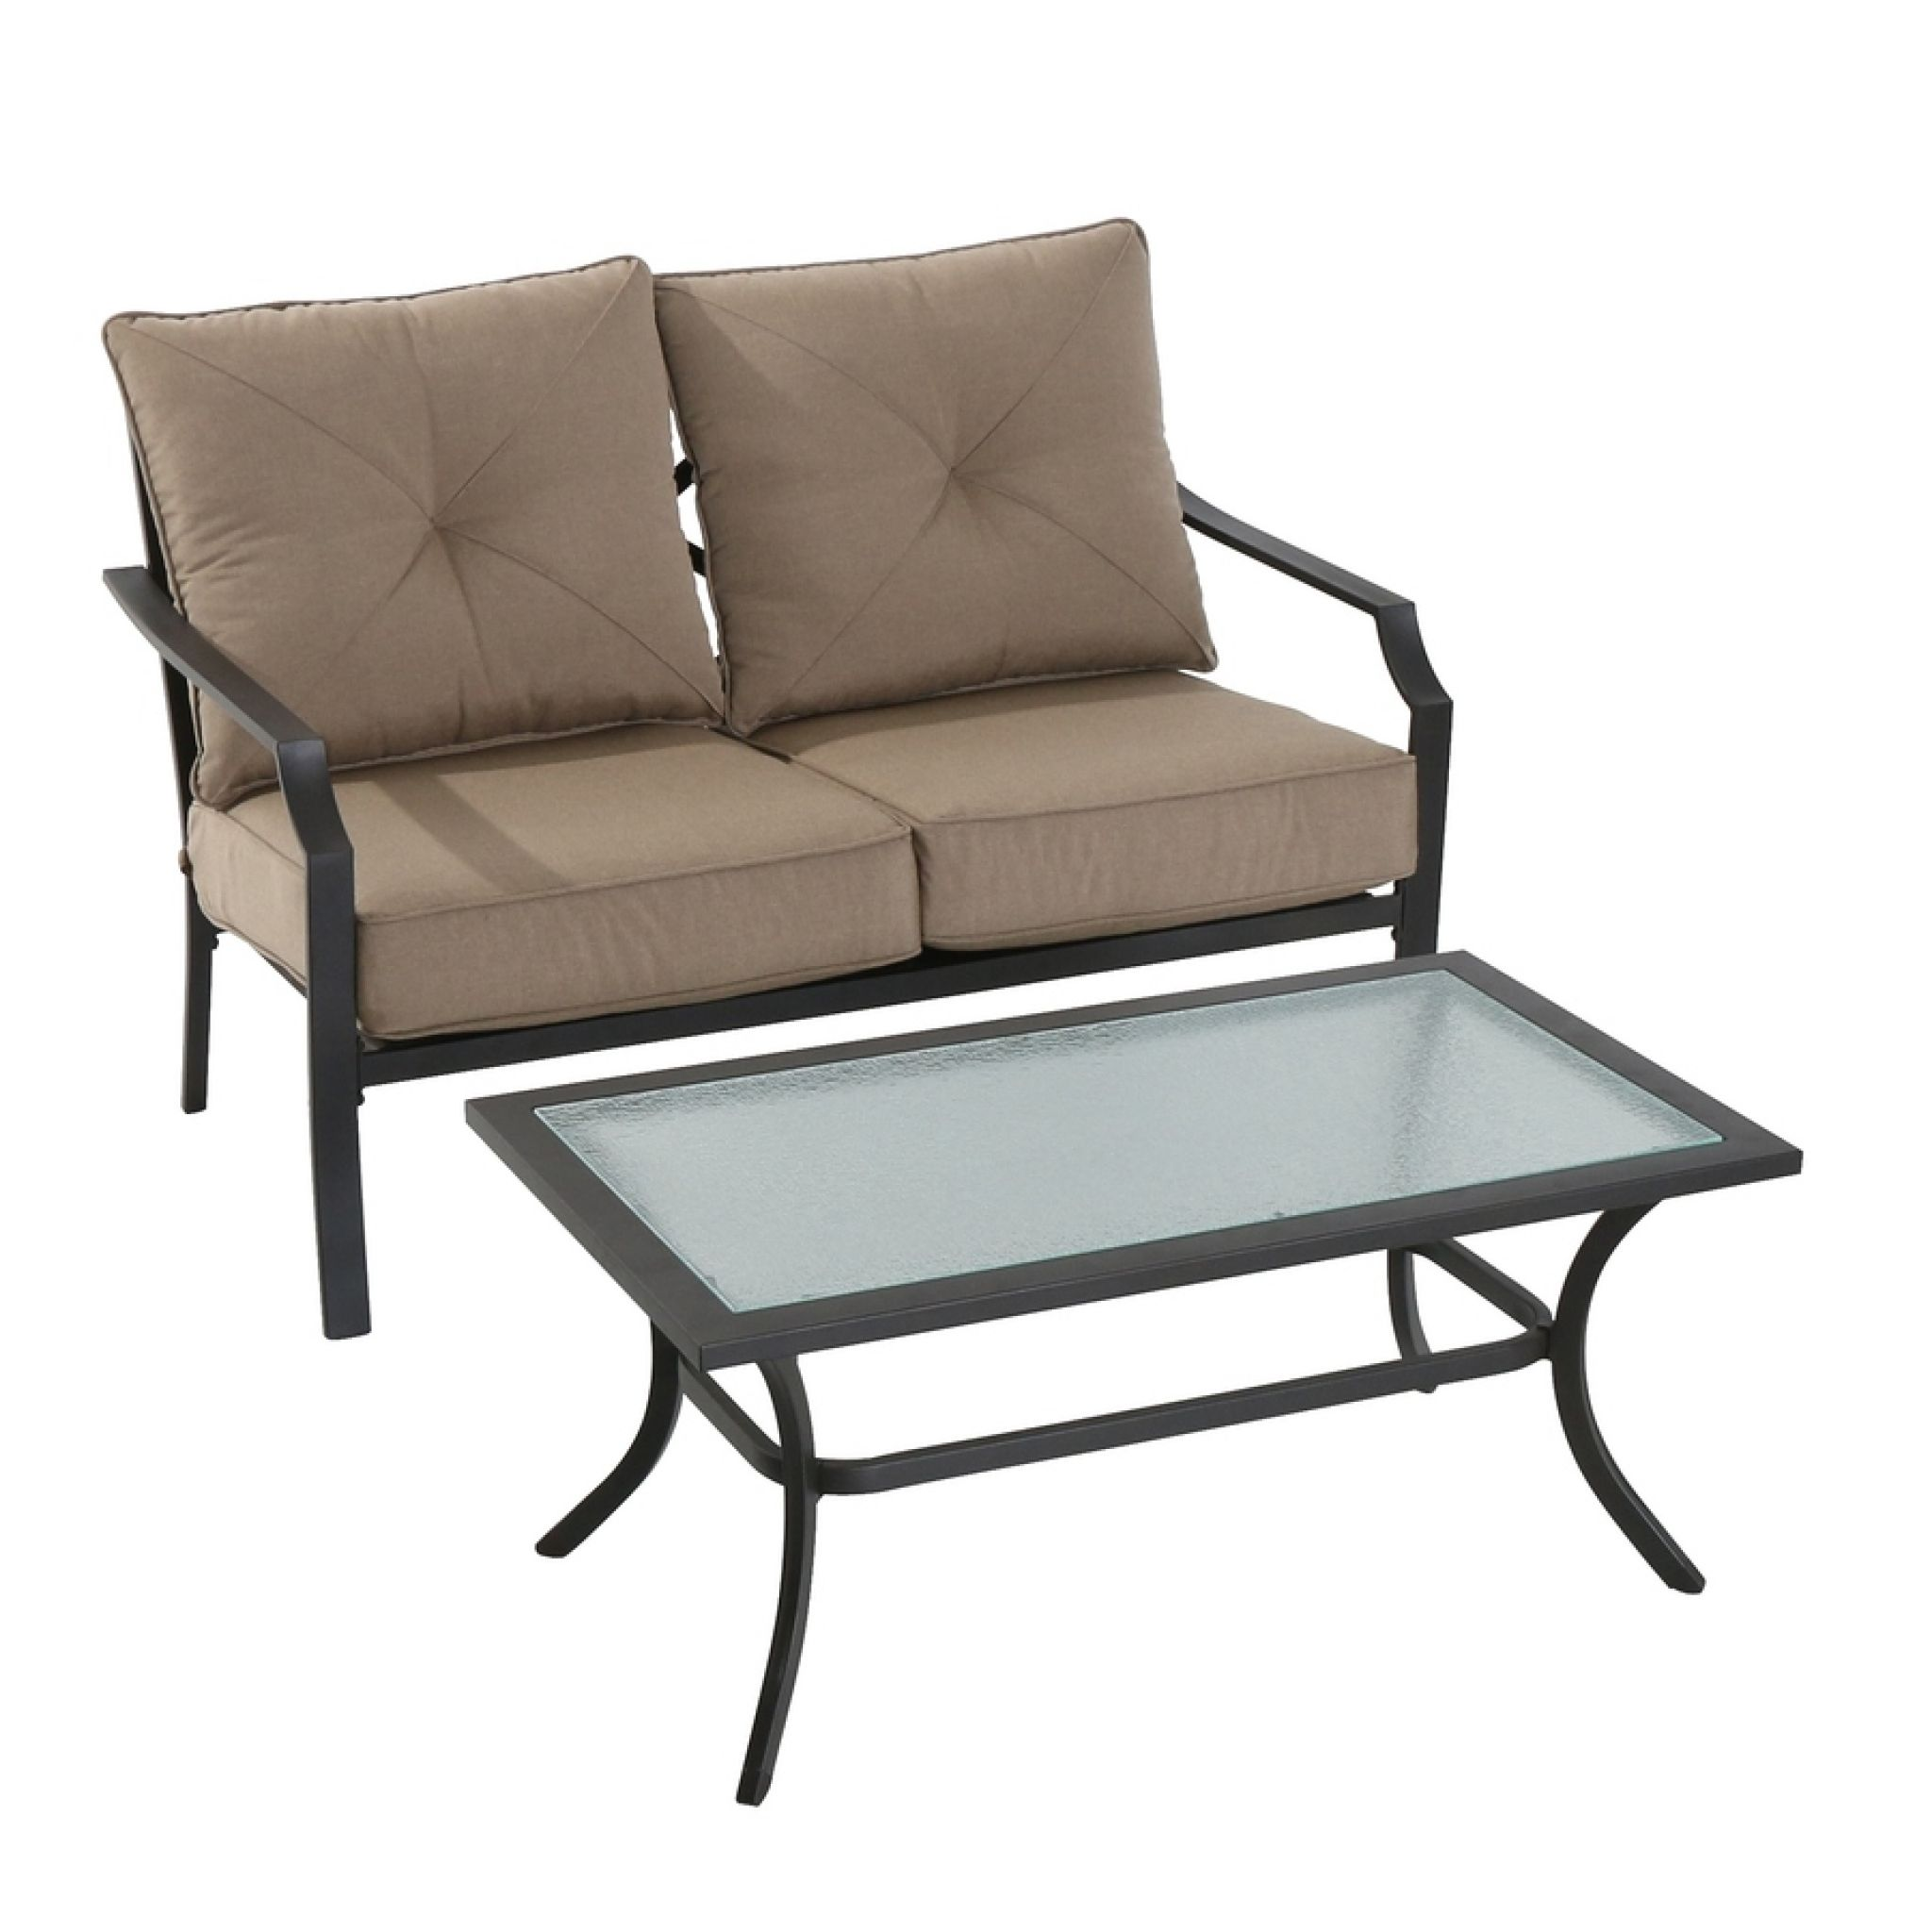 lowes outdoor furniture clearance most popular interior paint rh pinterest com